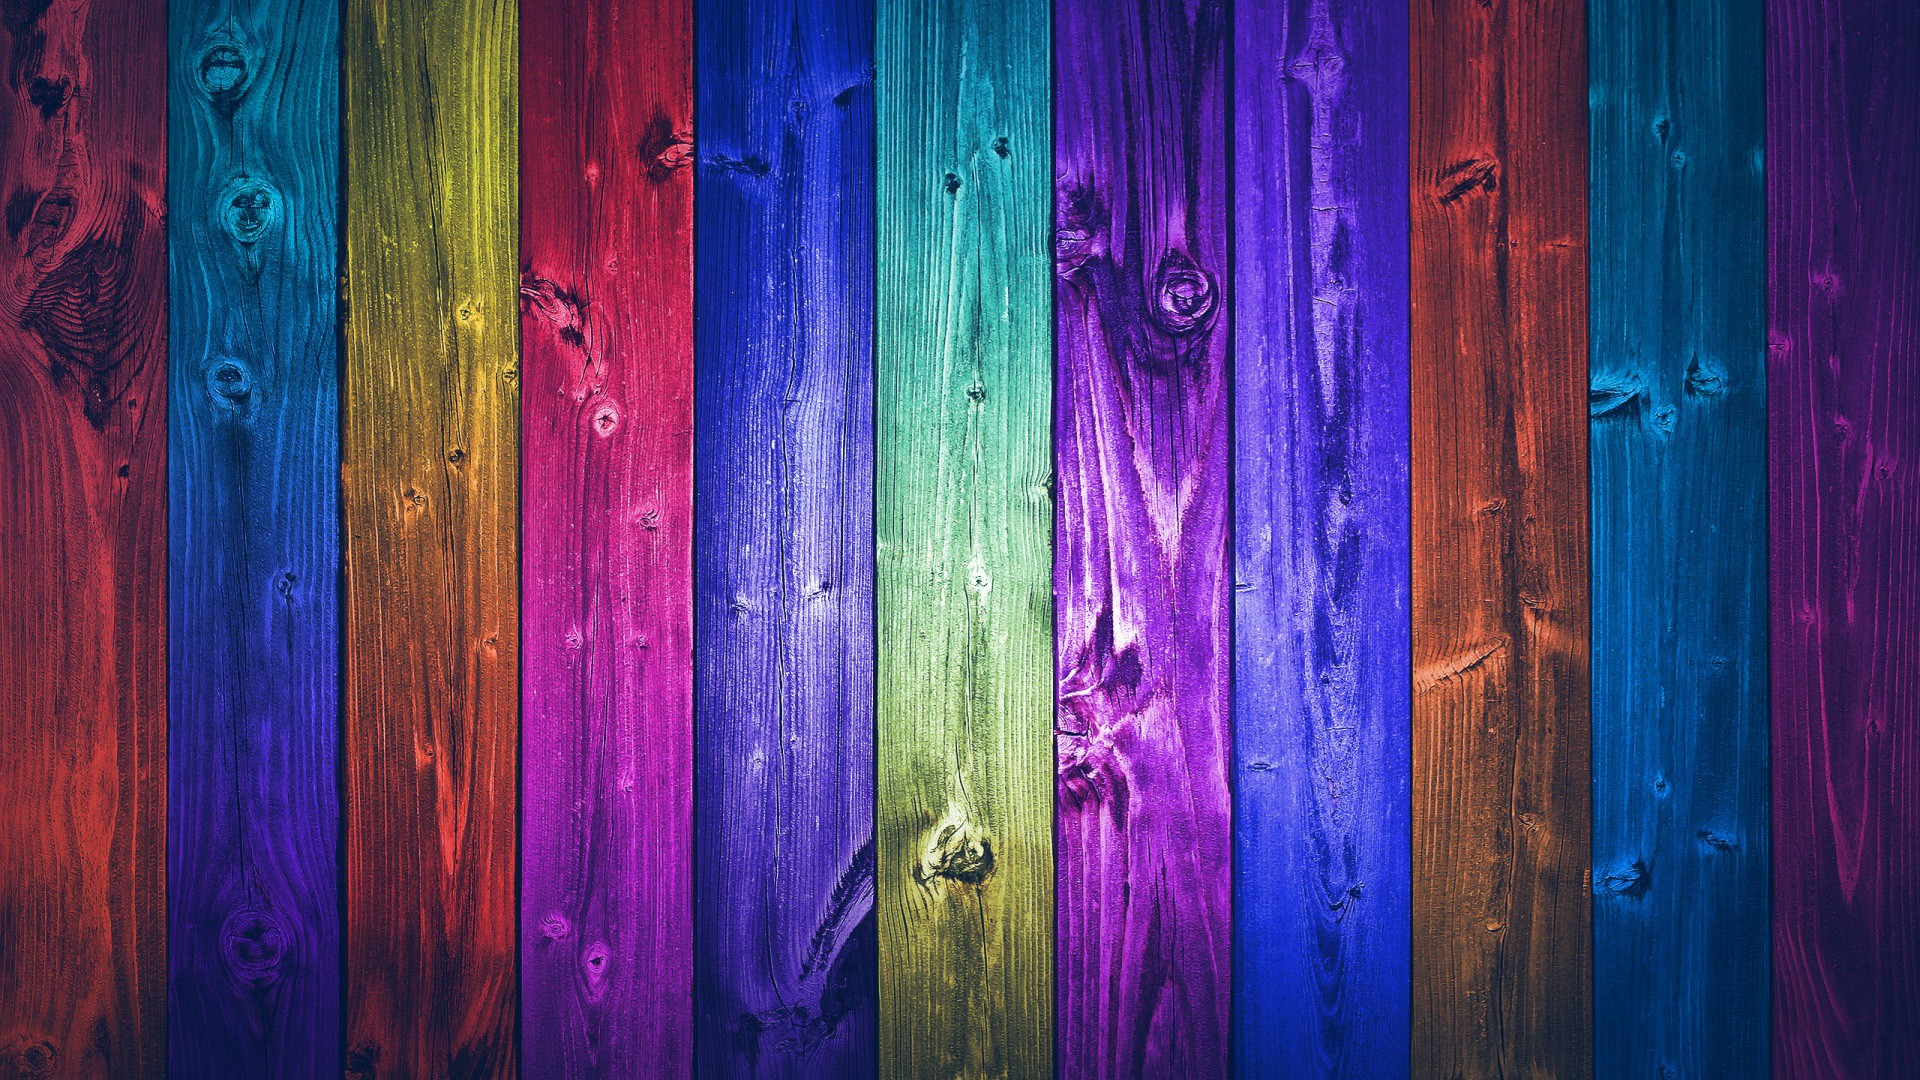 Download Colorful Wooden Plates Wallpaper Wallpapers 1920x1080